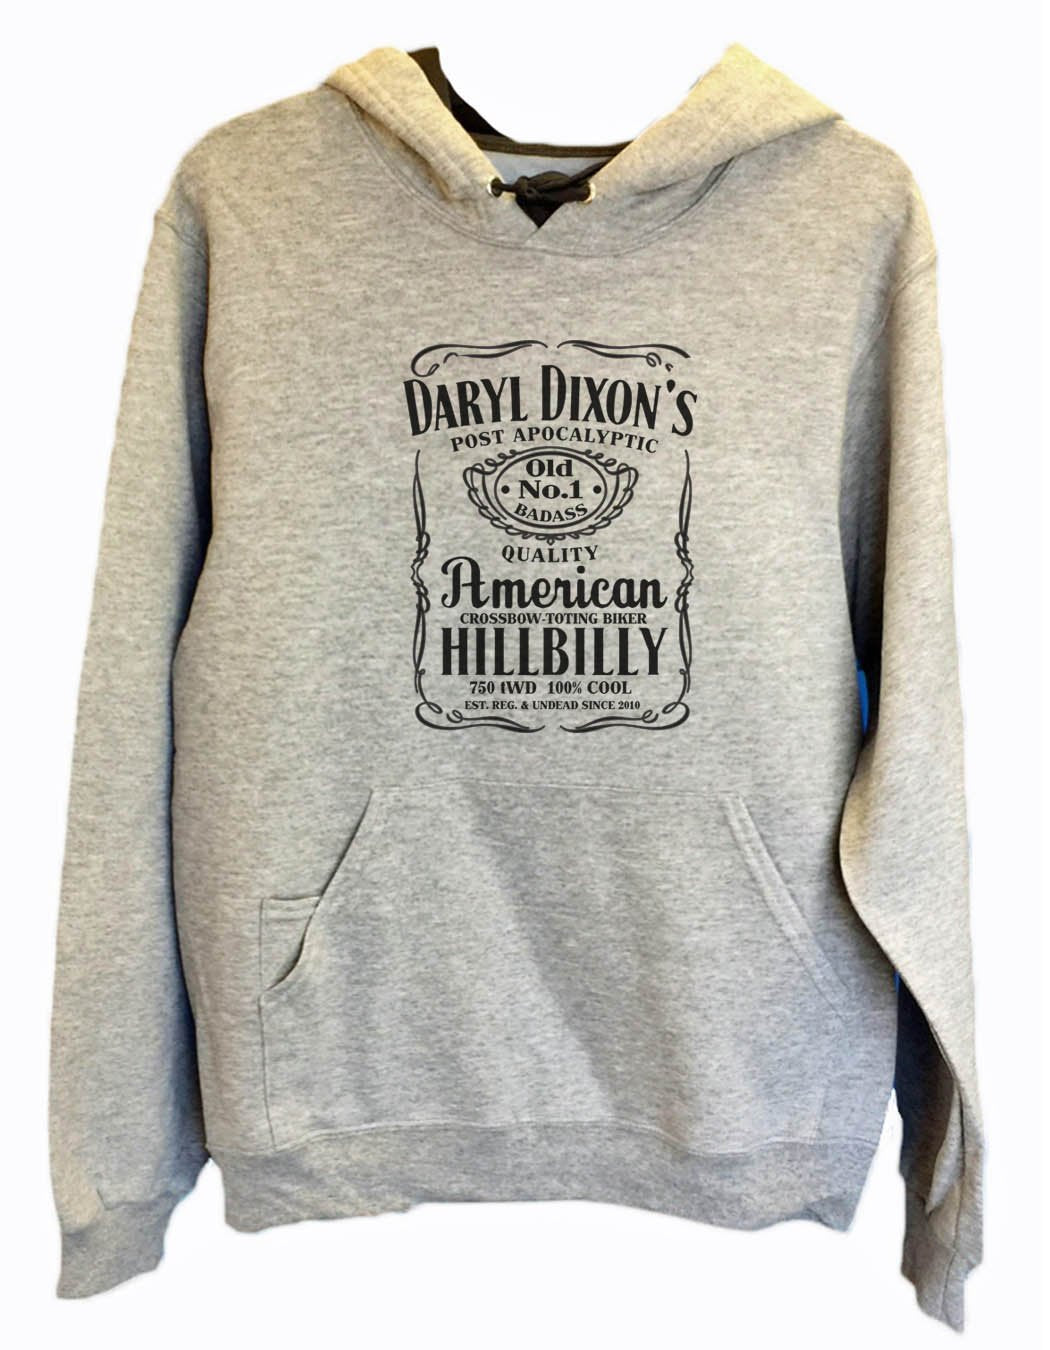 UNISEX HOODIE - Daryl Dixon's American Hillbilly - FUNNY MENS AND WOMENS HOODED SWEATSHIRTS - 2309 Funny Shirt